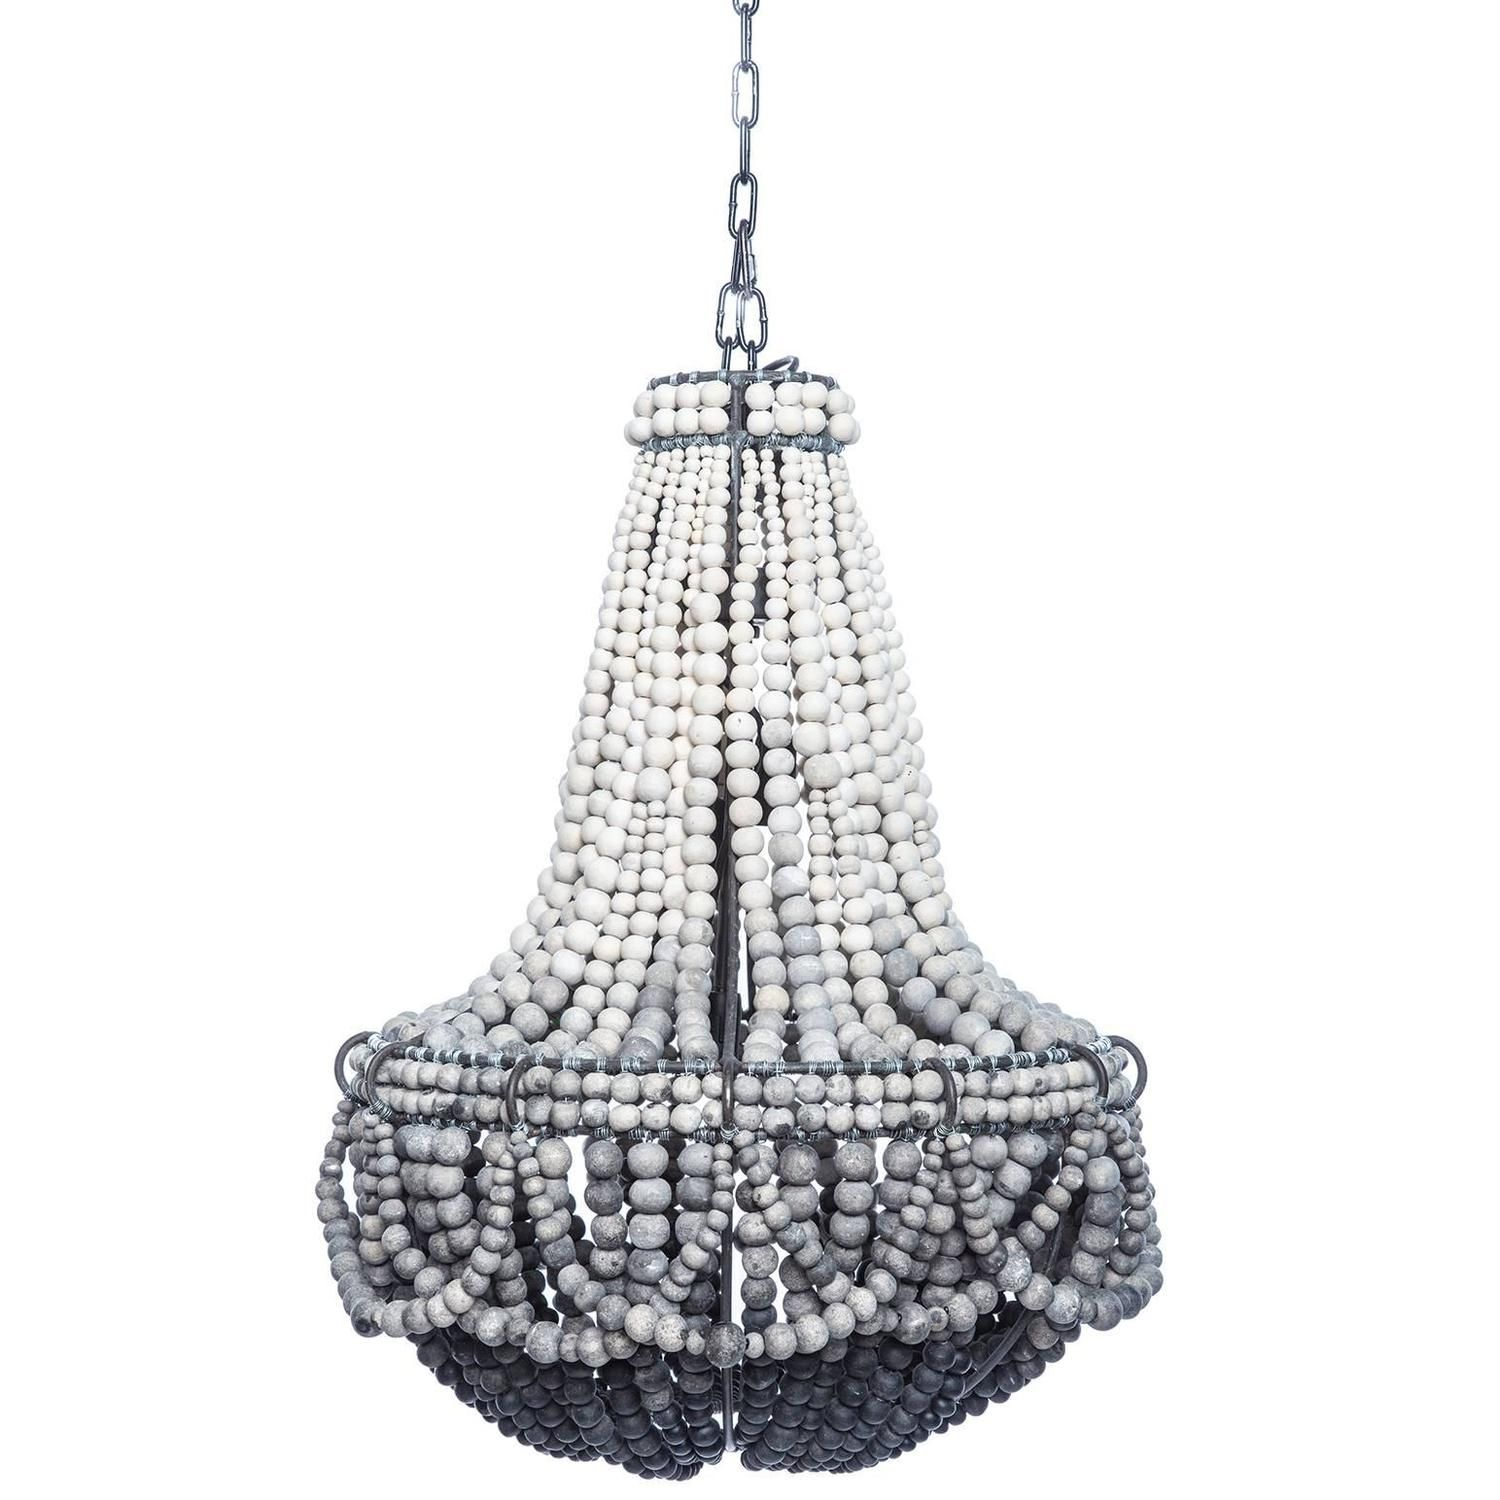 chandelier home chandeliers productlist edisto style hollywood beaded white product bead kathy designer eclectic kuo regency